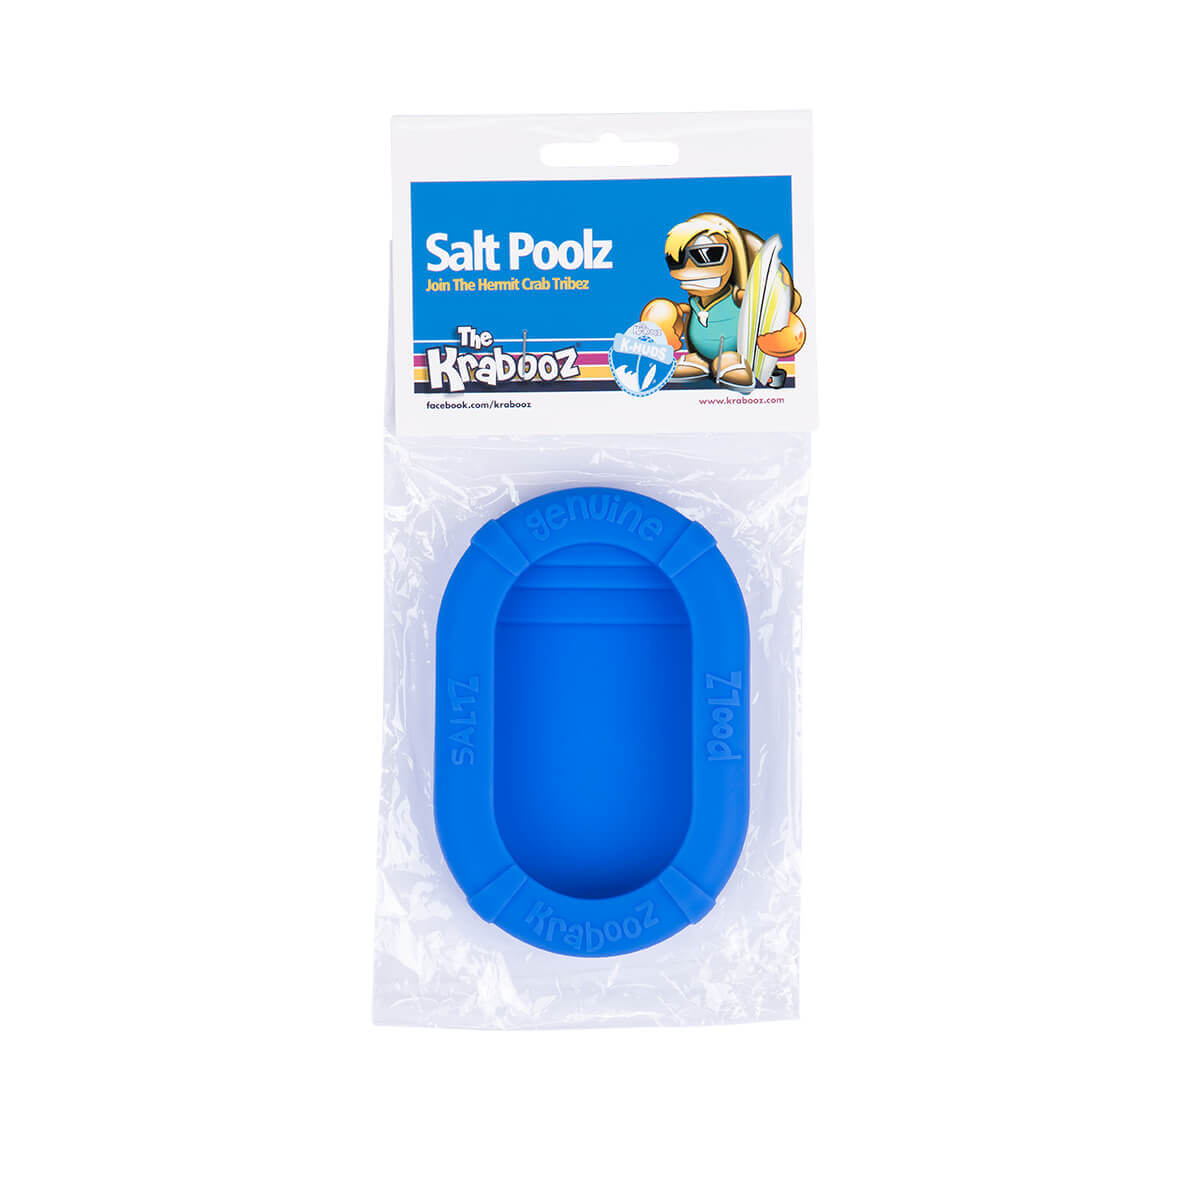 Krabooz Salt Poolz